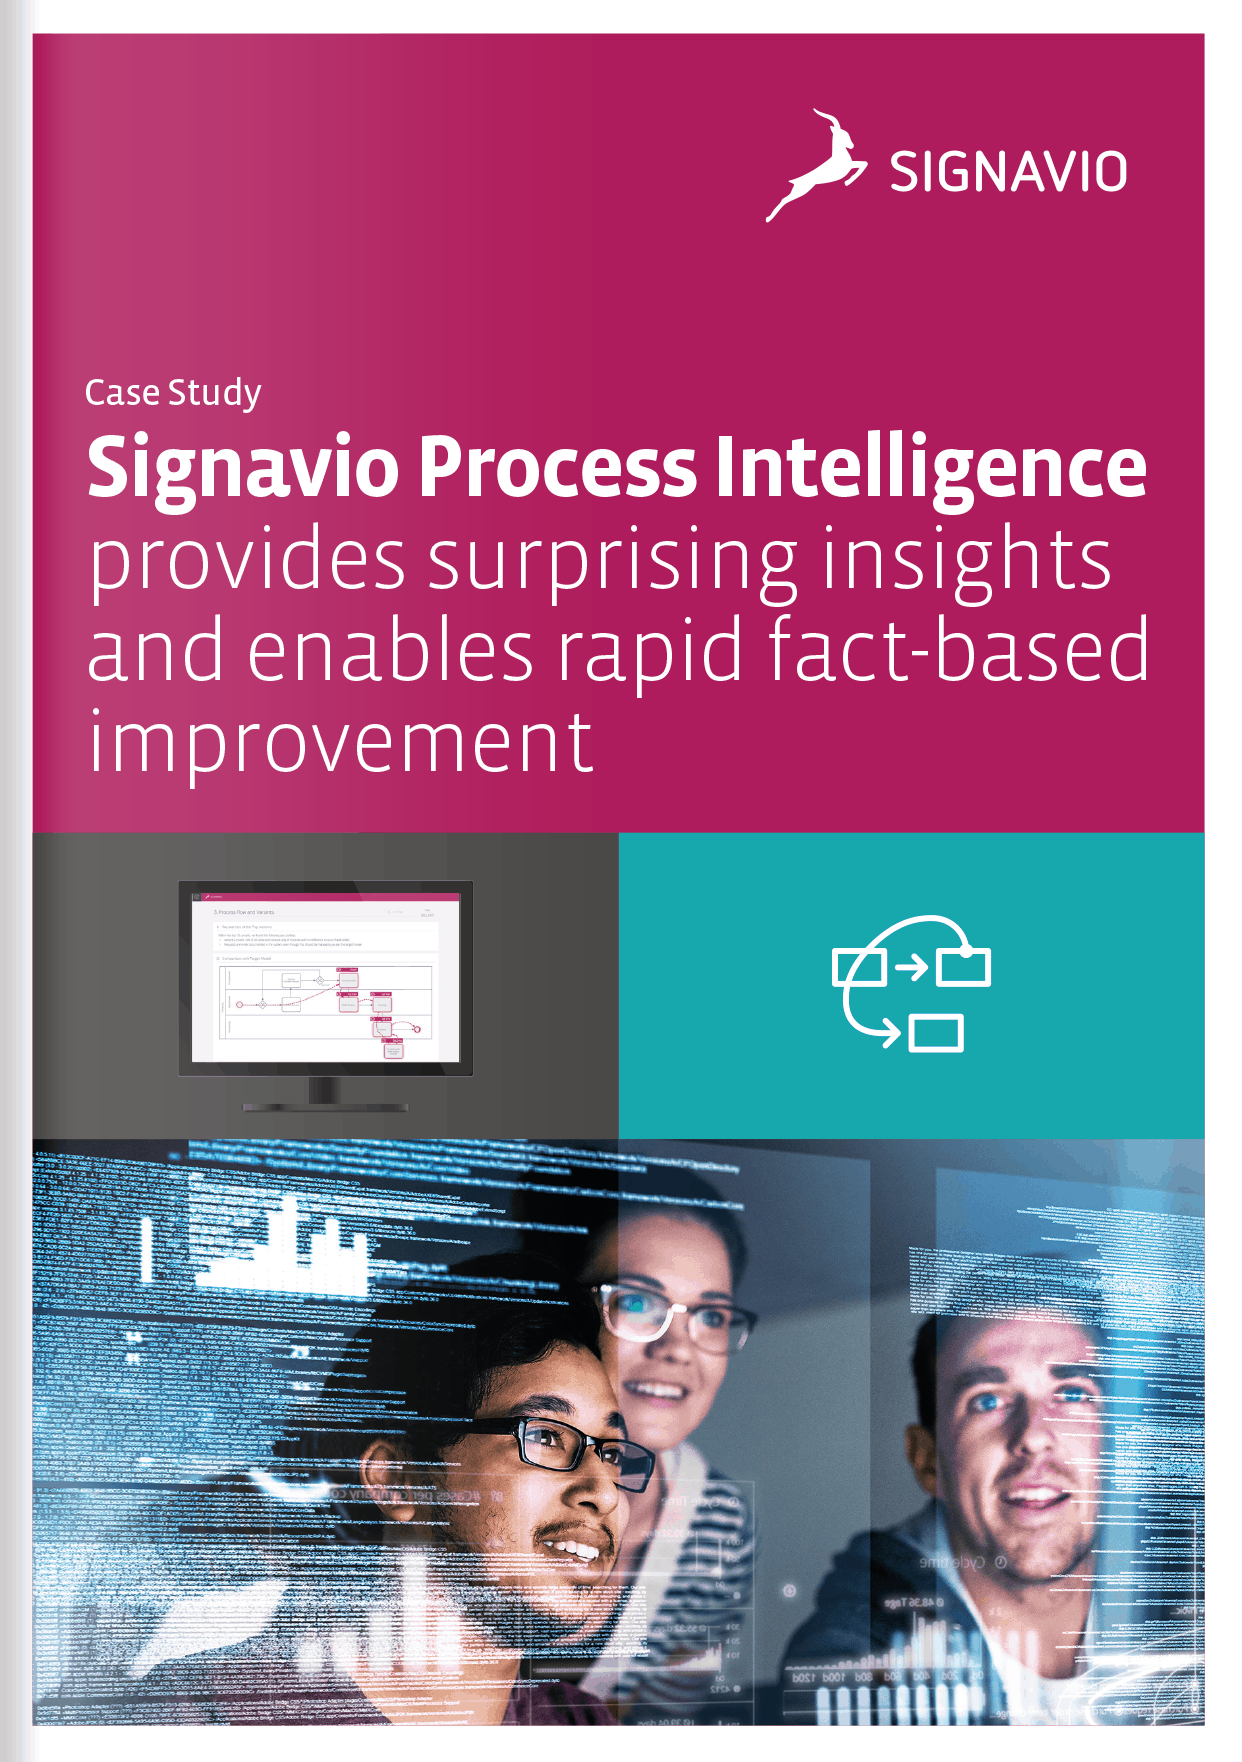 case study about process mining with Signavio